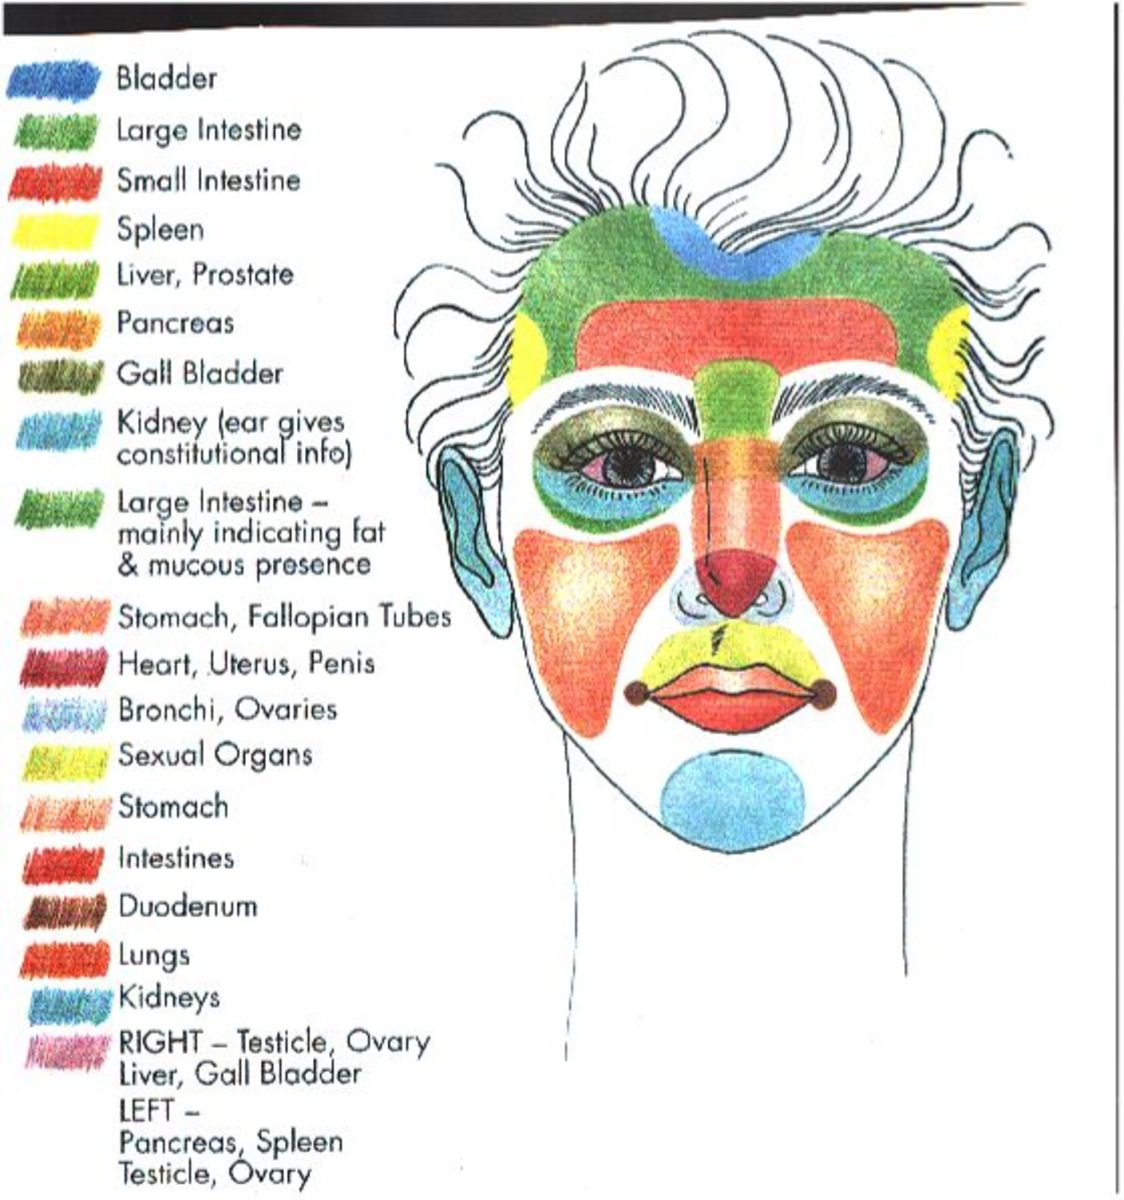 Roles of body and acne spots